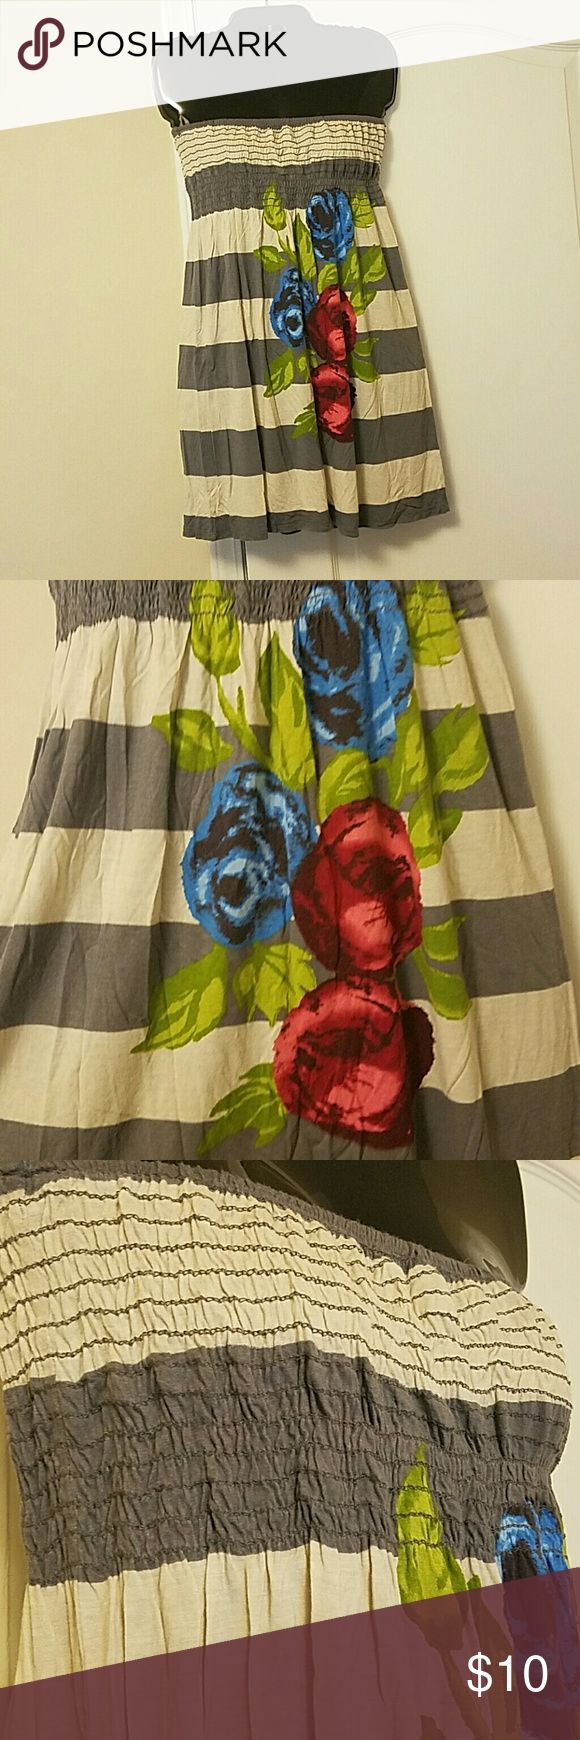 Tube top dress One clothing tube top dress size medium. I personally wore it as a tunic or as a swim suit cover up but if your not as tall as me (5'10) it can easily be worn as a dress lol. Worn but still good condition no holes or stains. Has the same print on the front and back one clothing Dresses